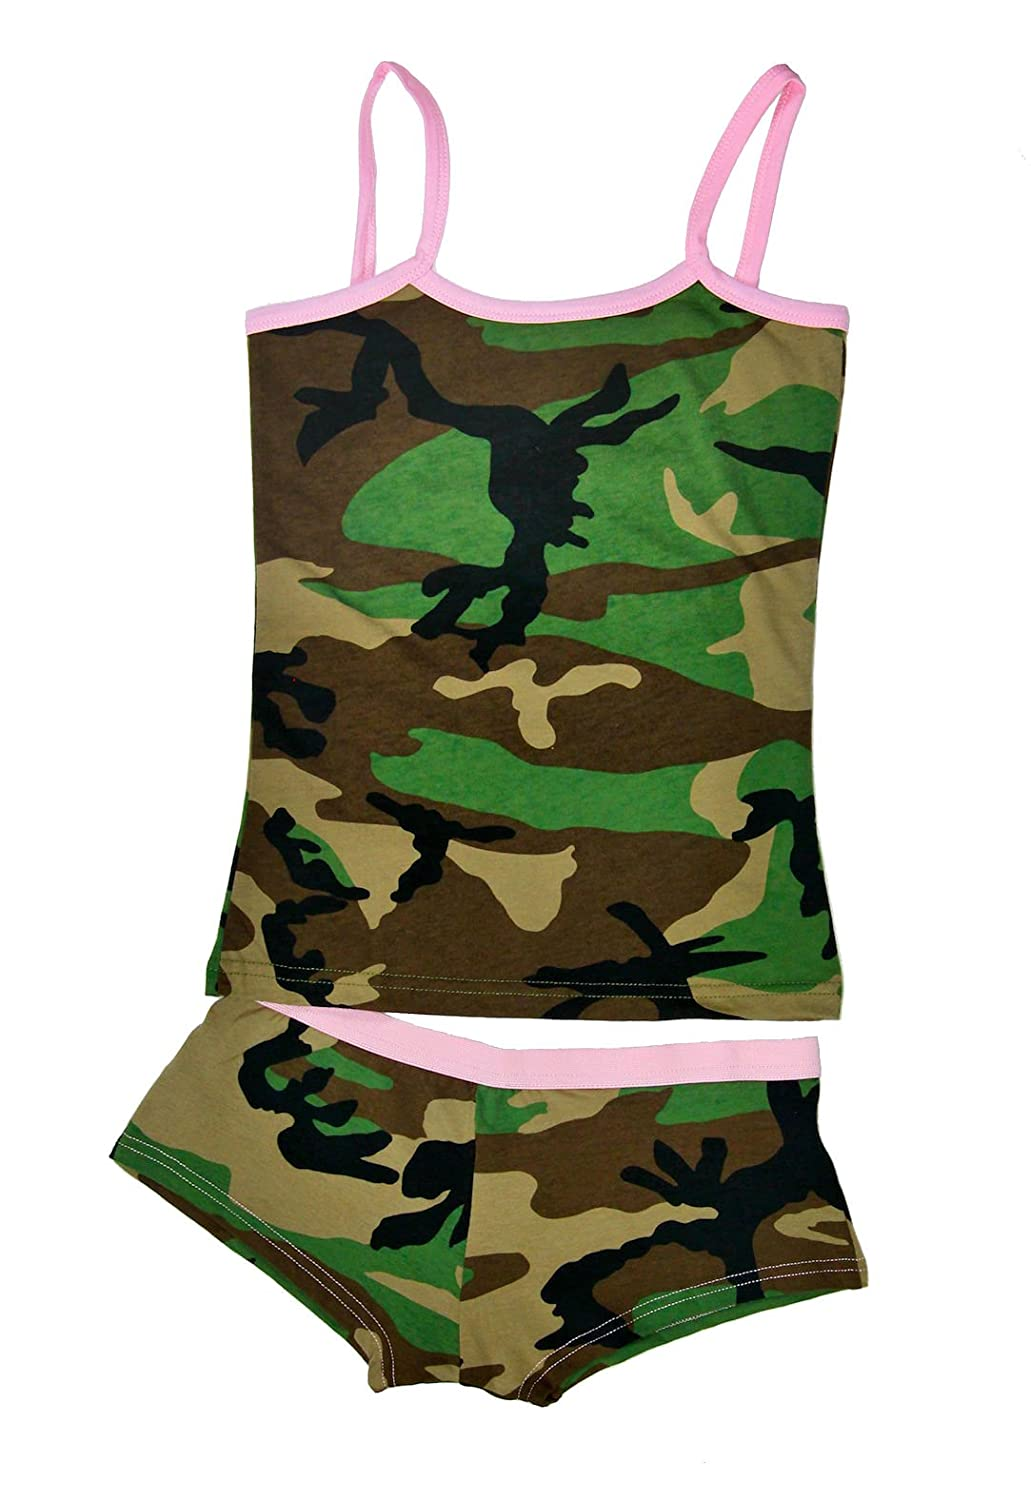 22af46cabb853 Top8: Nyteez Women\'s Camouflage Booty Short and Tank Top Set